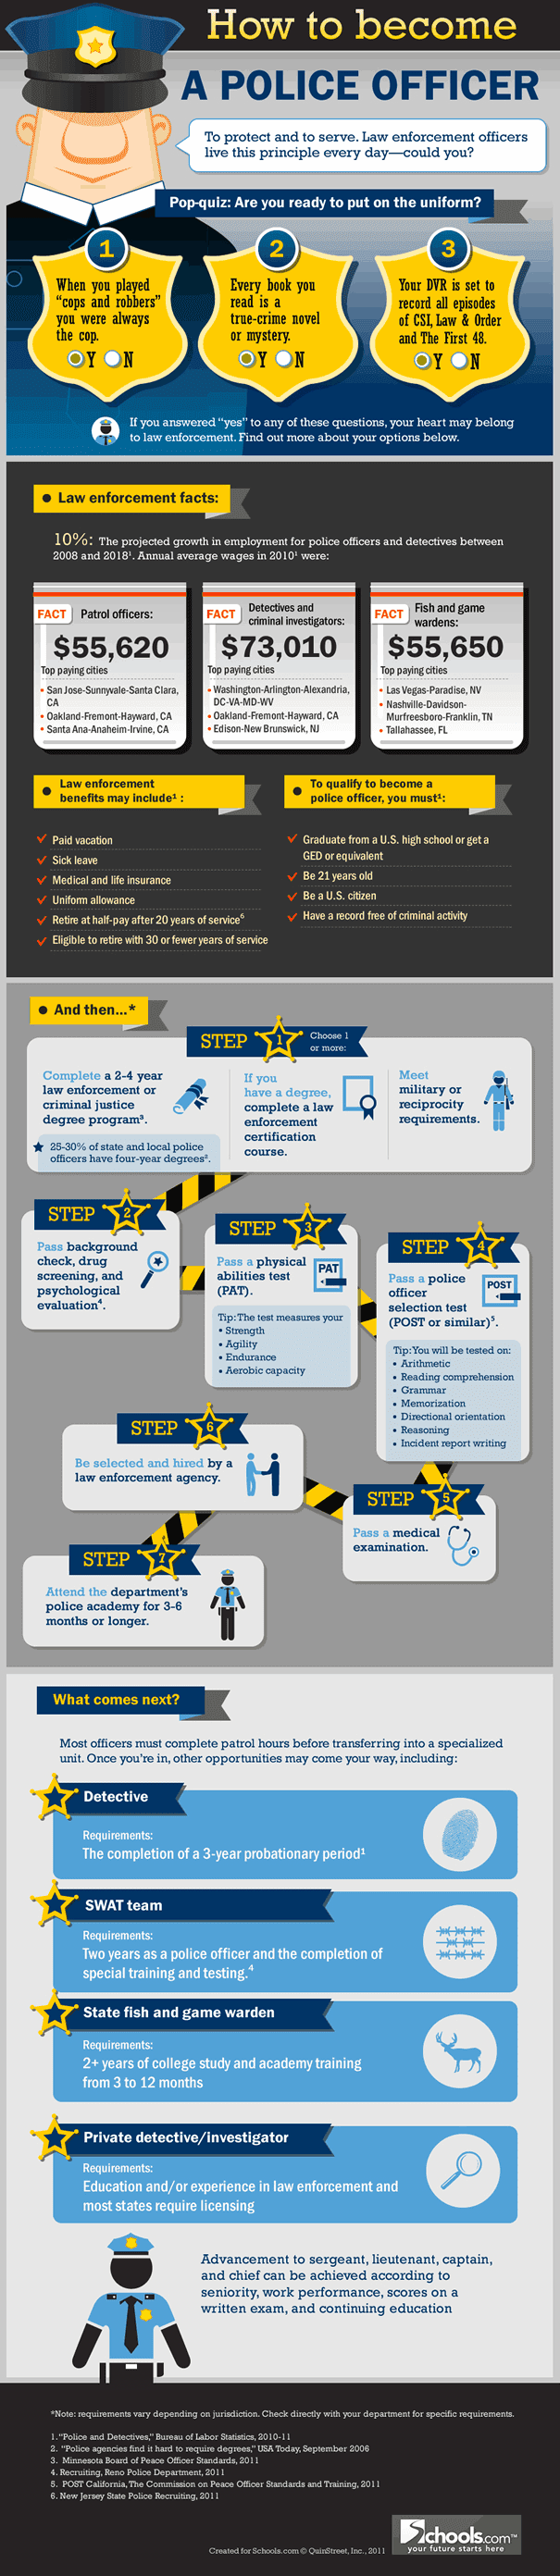 How to become a police officer #Infographic